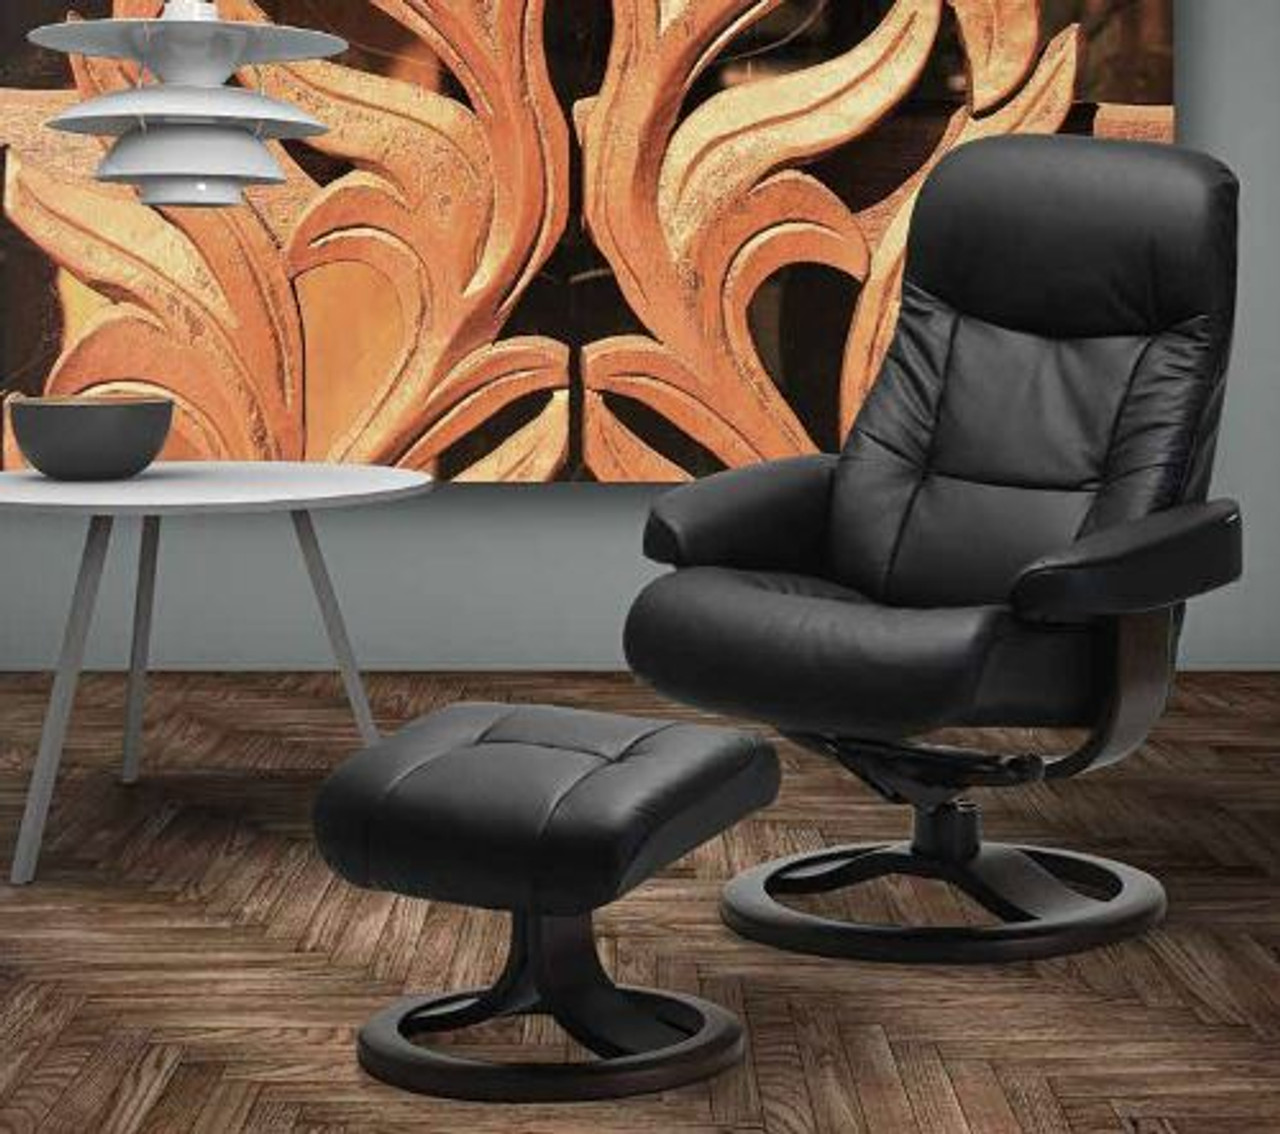 Terrific Large Fjords Muldal Clearance Priced Recliner Ottoman Ibusinesslaw Wood Chair Design Ideas Ibusinesslaworg